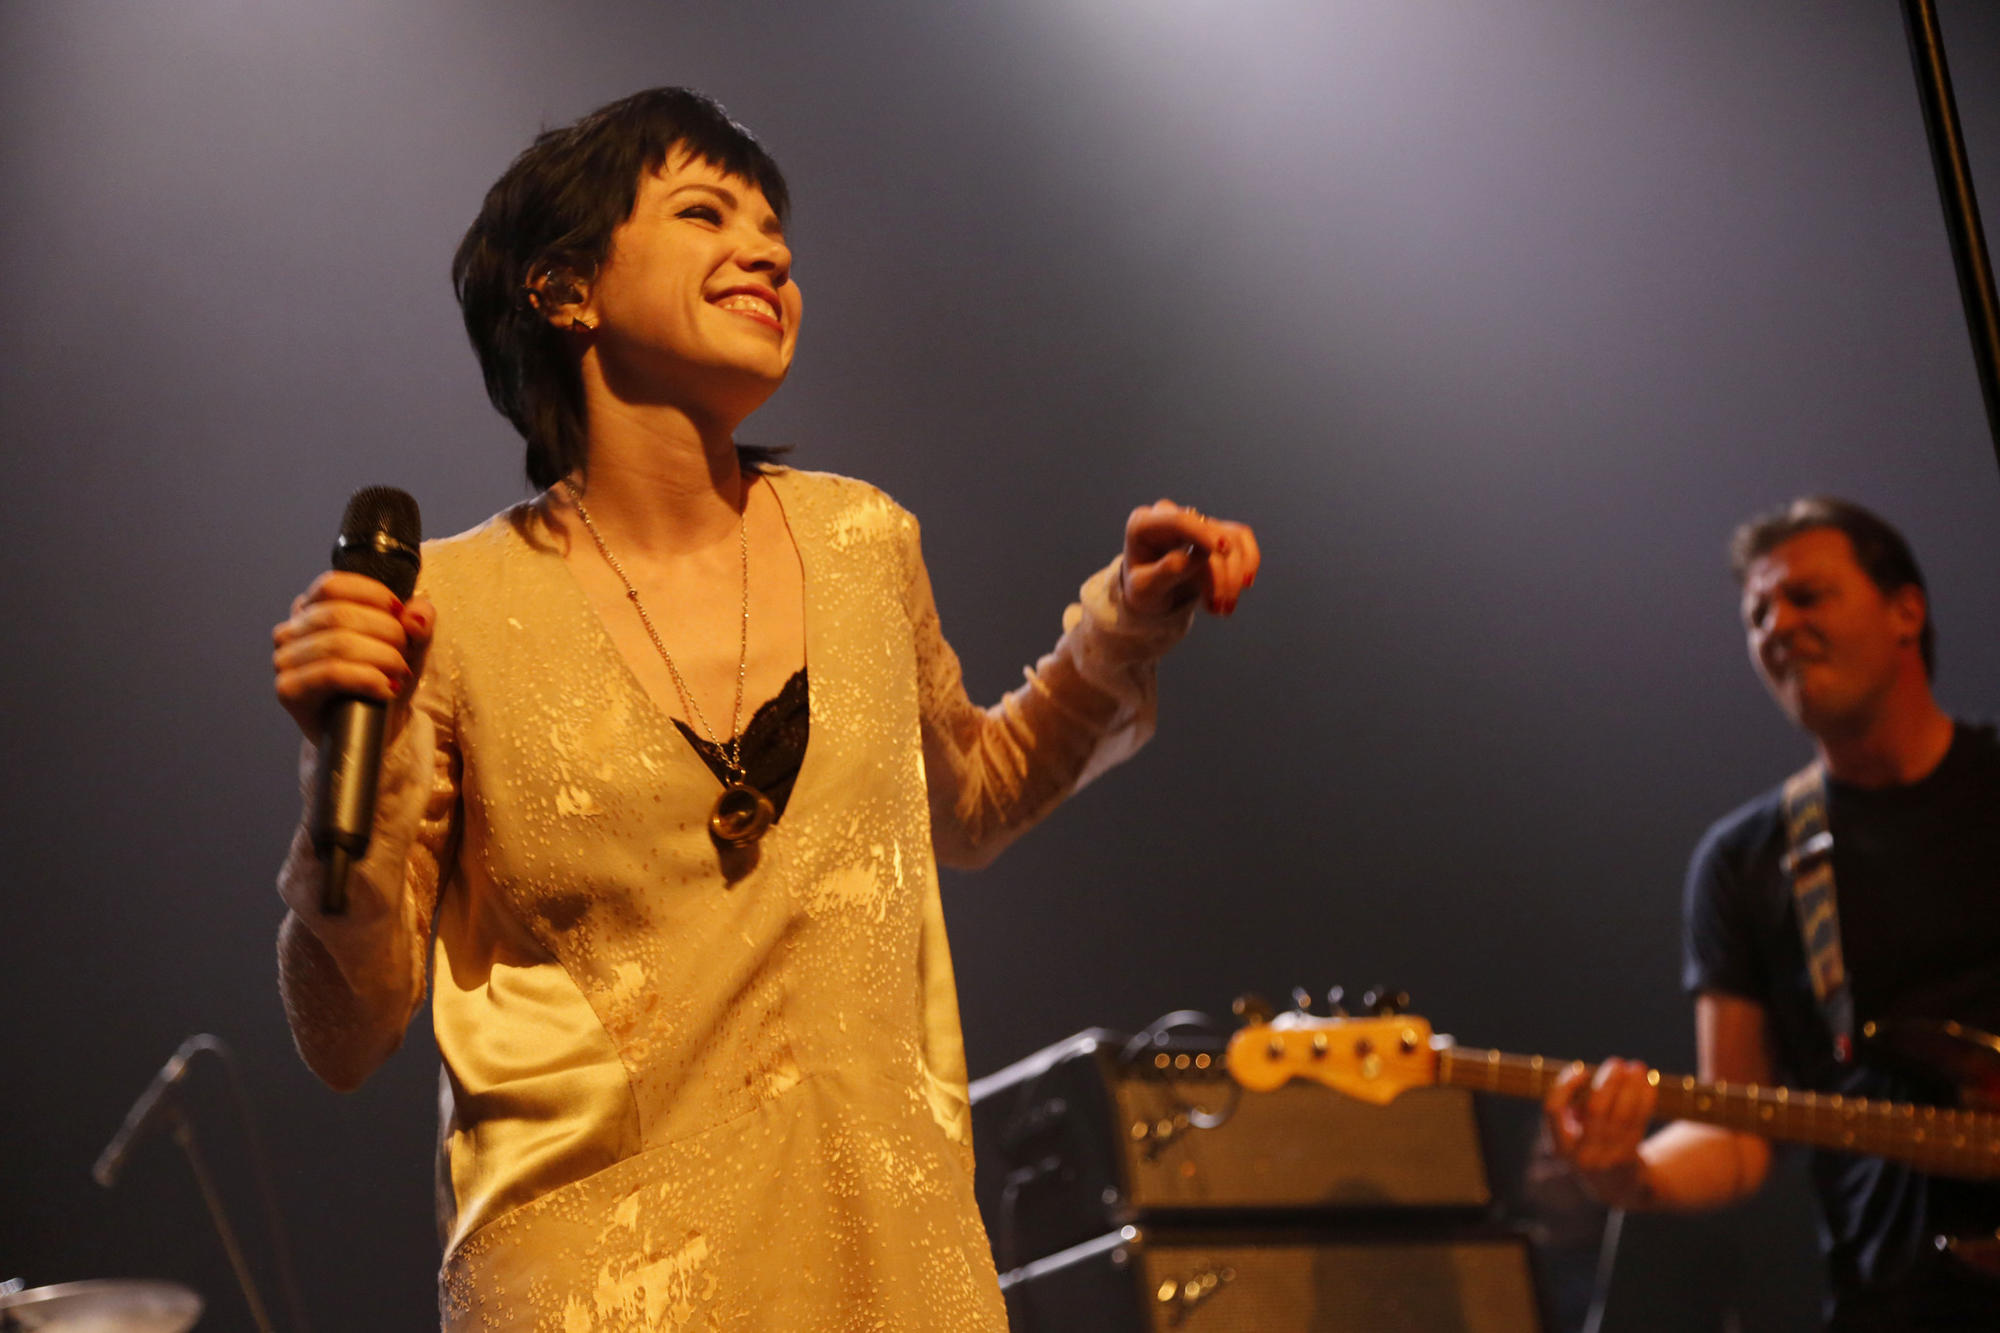 Carly Rae Jepsen performing at the Fleetwood Mac Fest on Feb. 10.